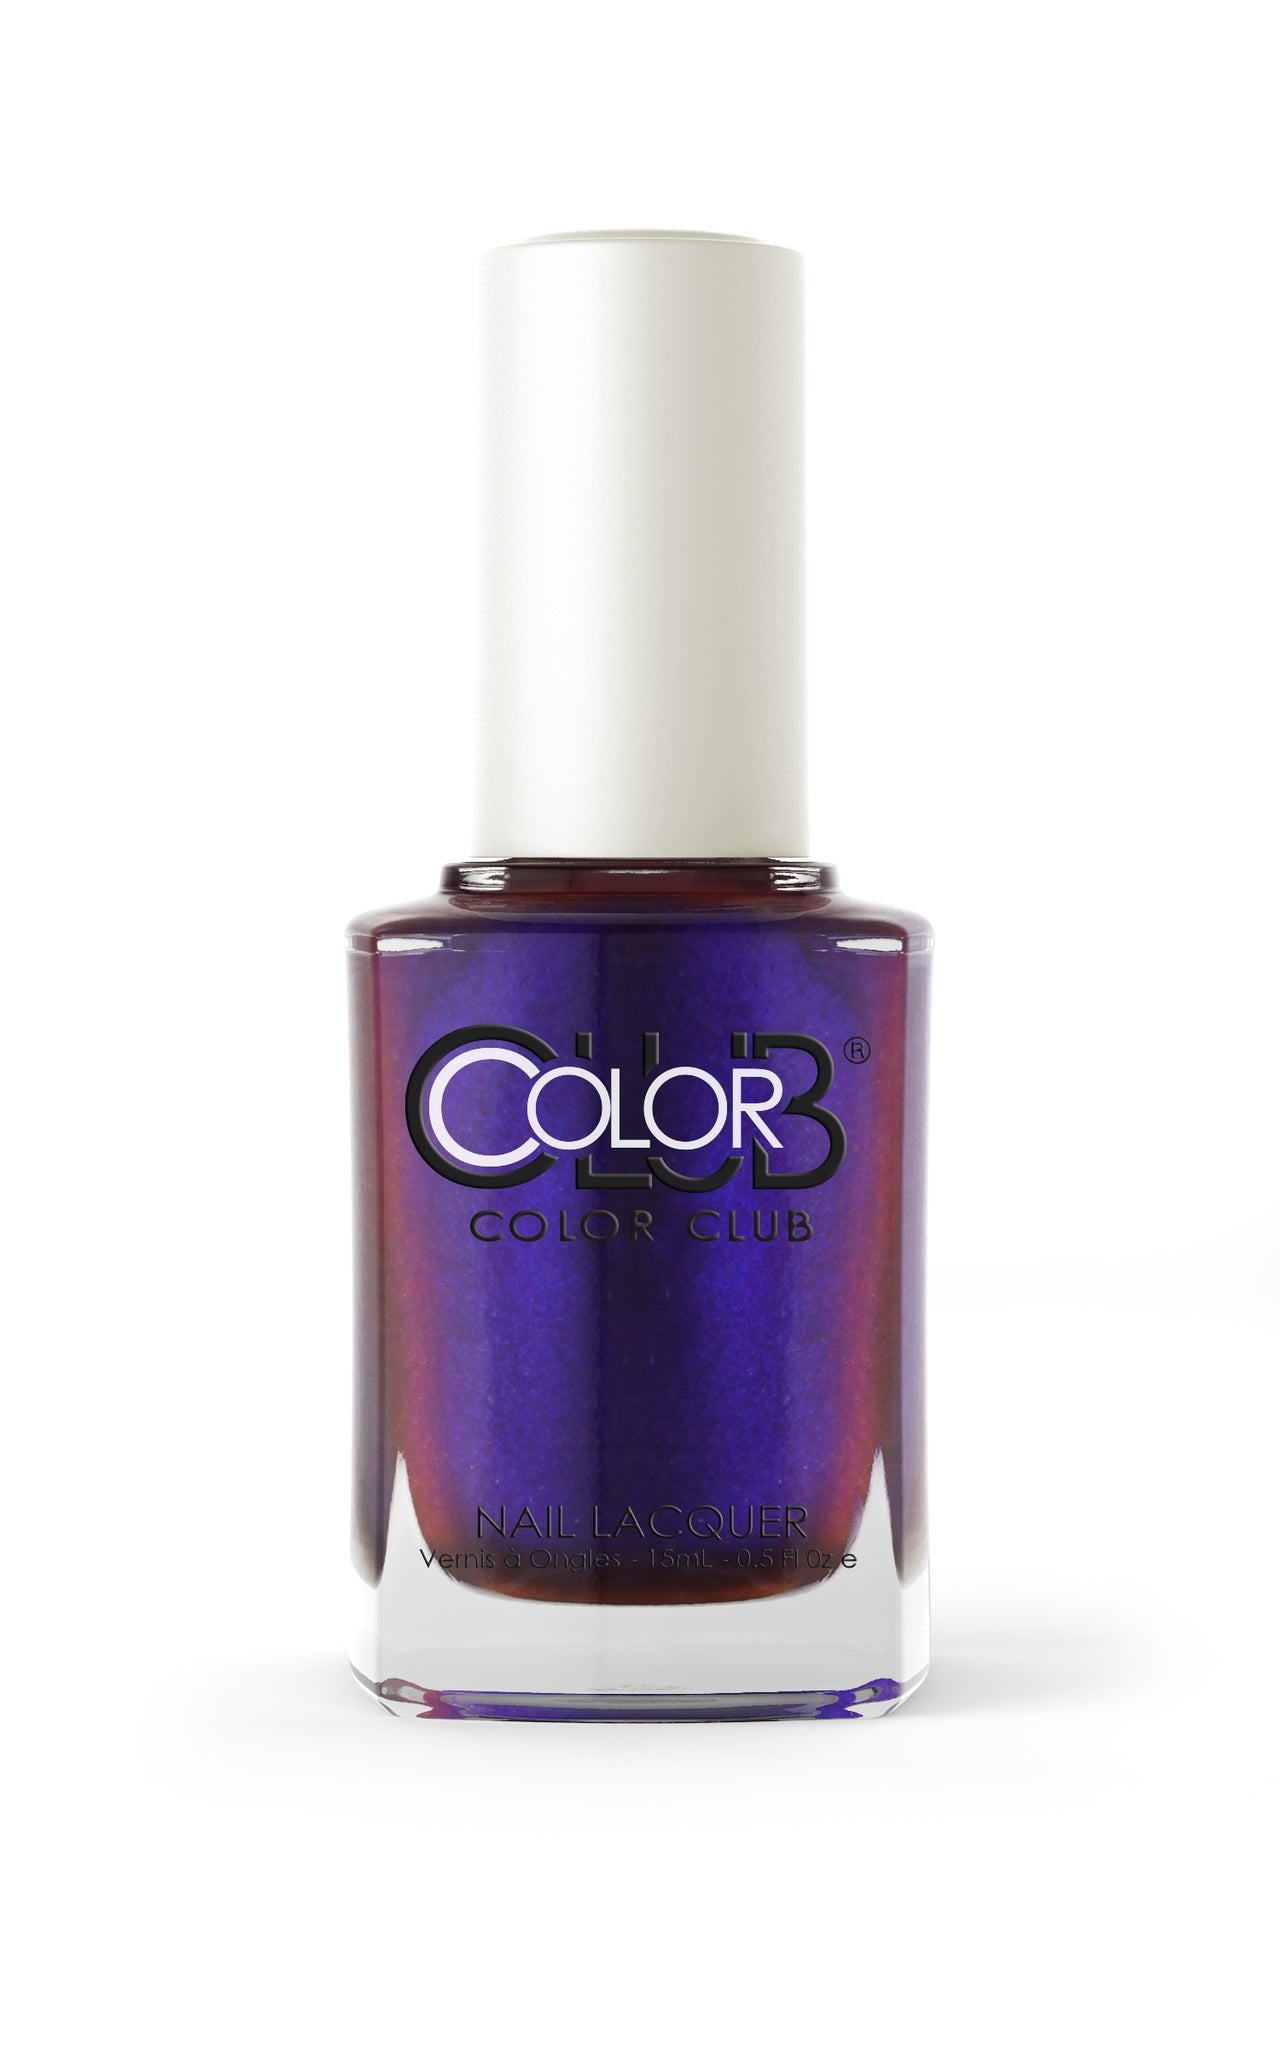 Nagellack Color Club TriChrome - We'll never be Royals #05ALS22 - Kollektion Oil Slick